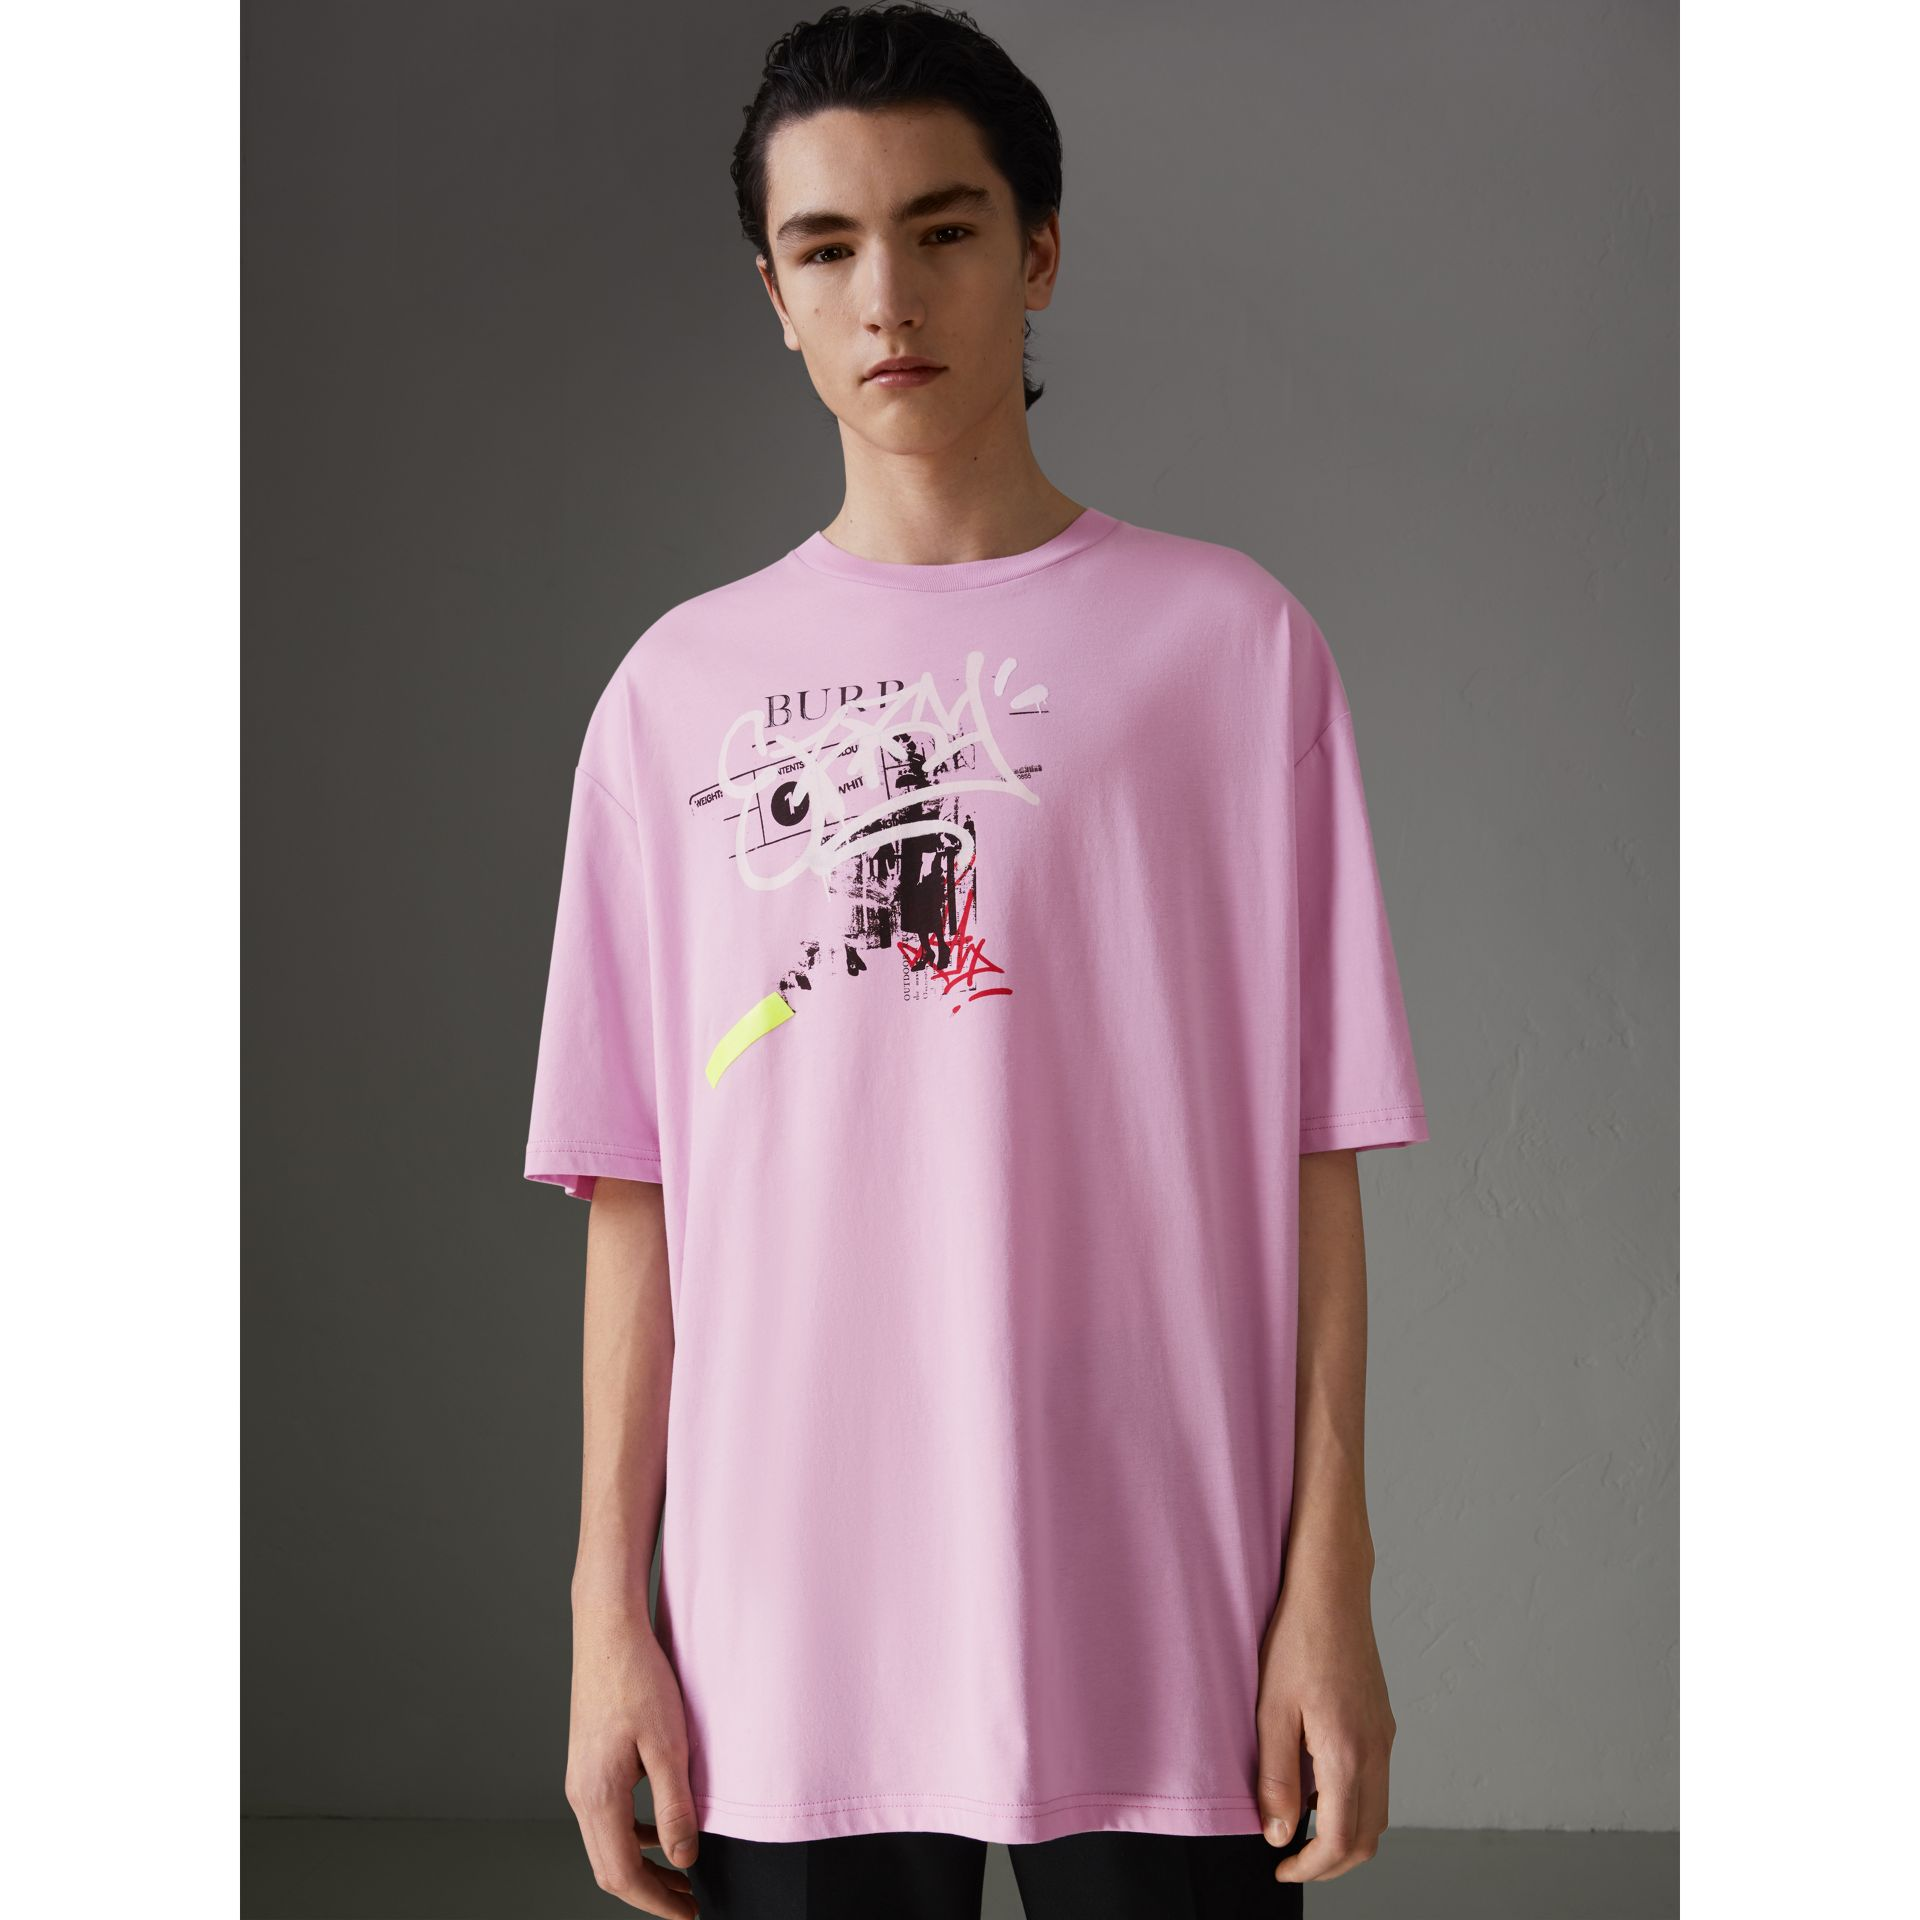 Graffitied Ticket Print Cotton T-shirt in Light Pink - Men | Burberry - gallery image 4